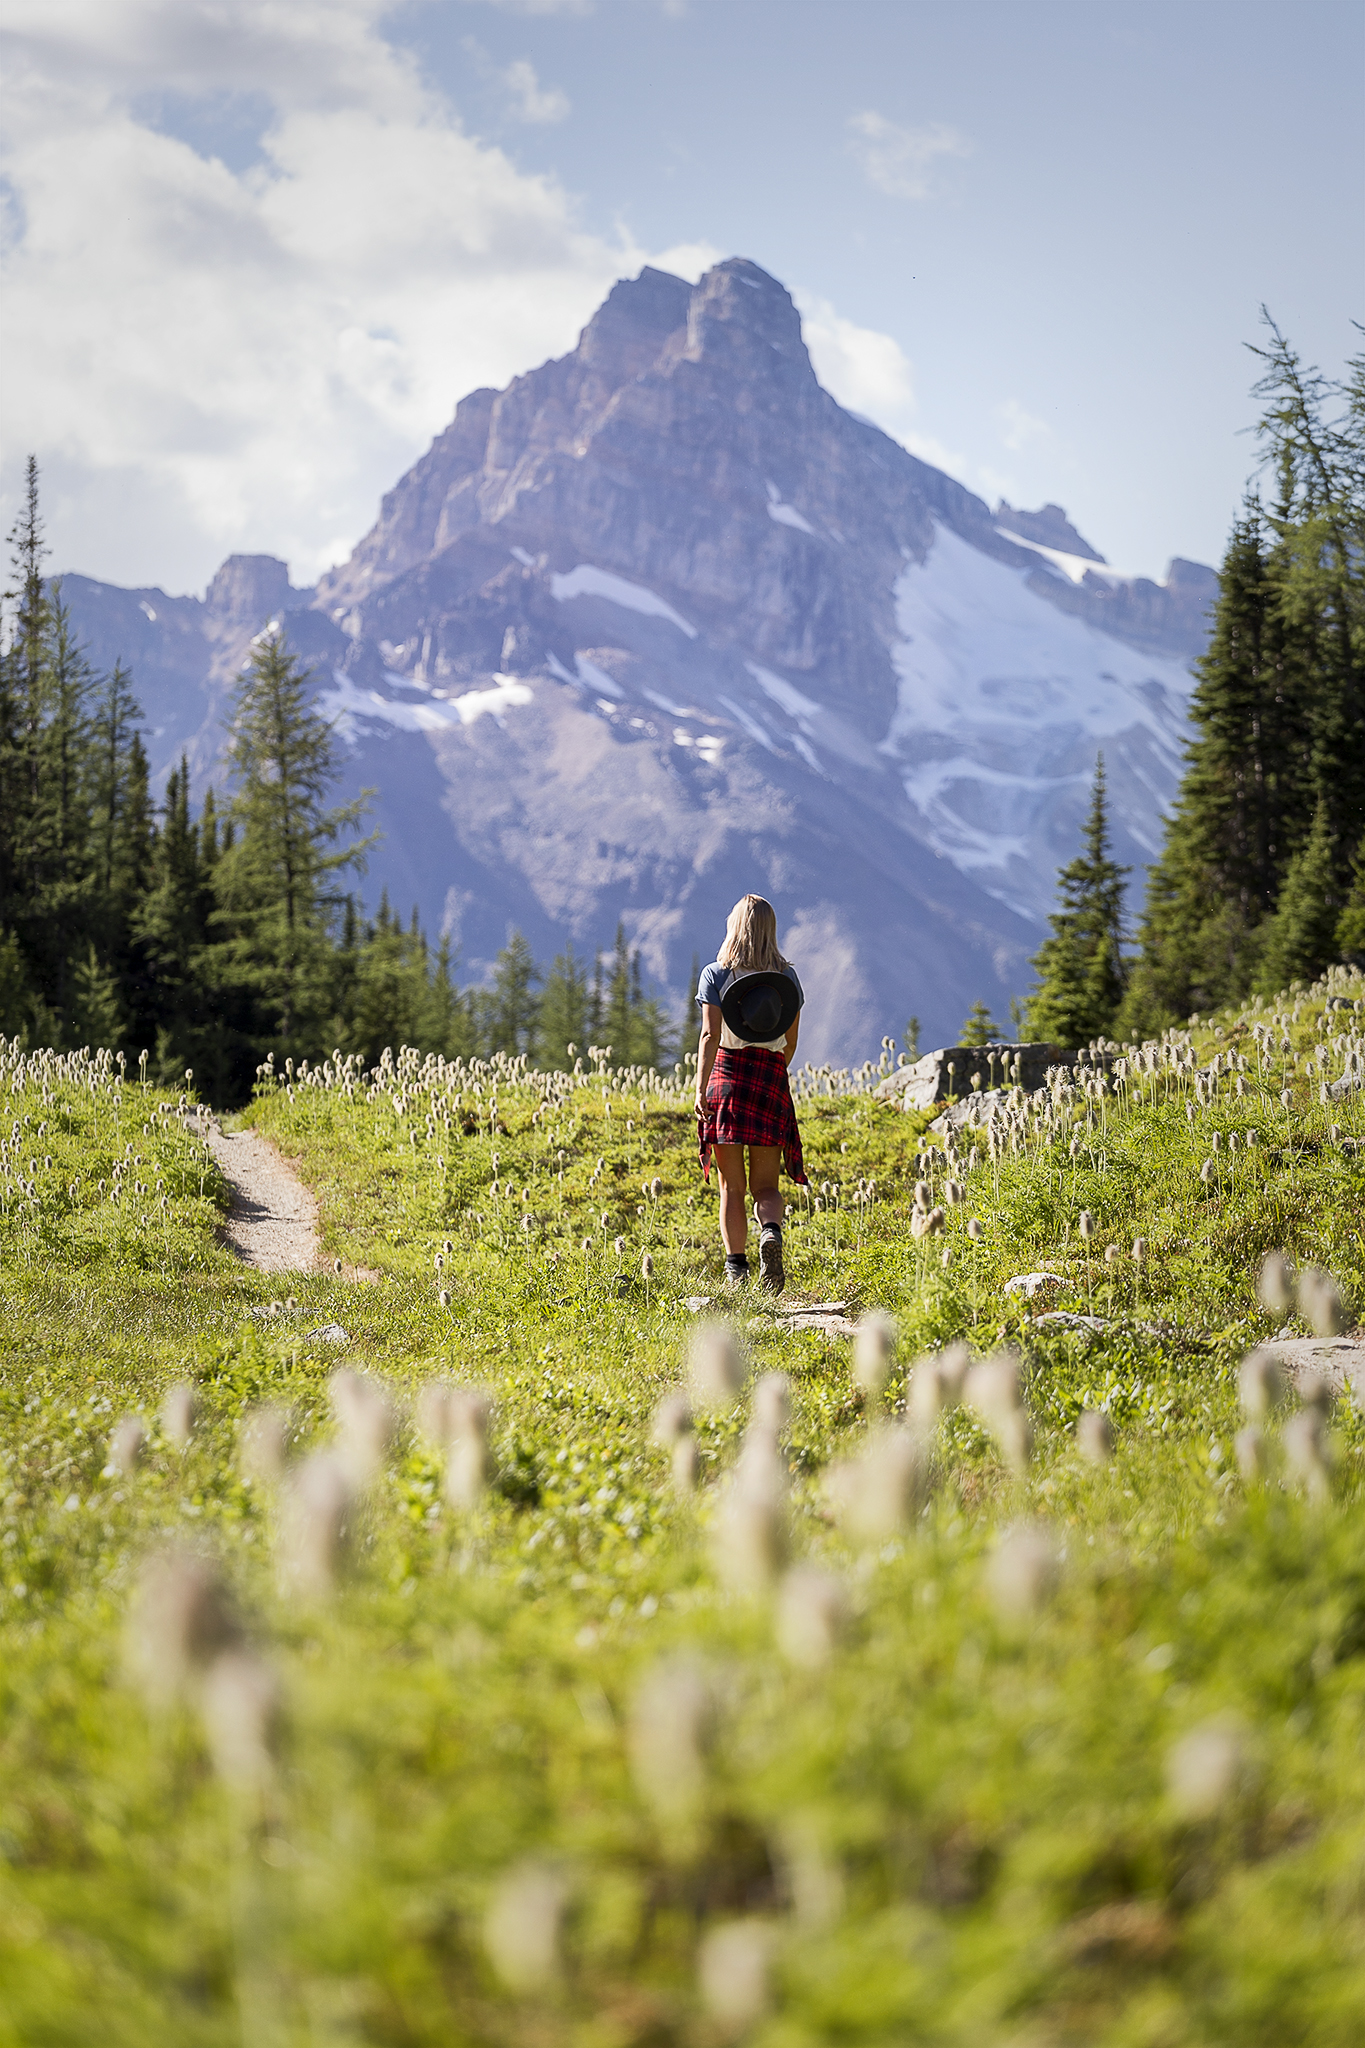 Enjoying mountain views and wild flowers at Lake O'Hara, the effort to big was worth it!